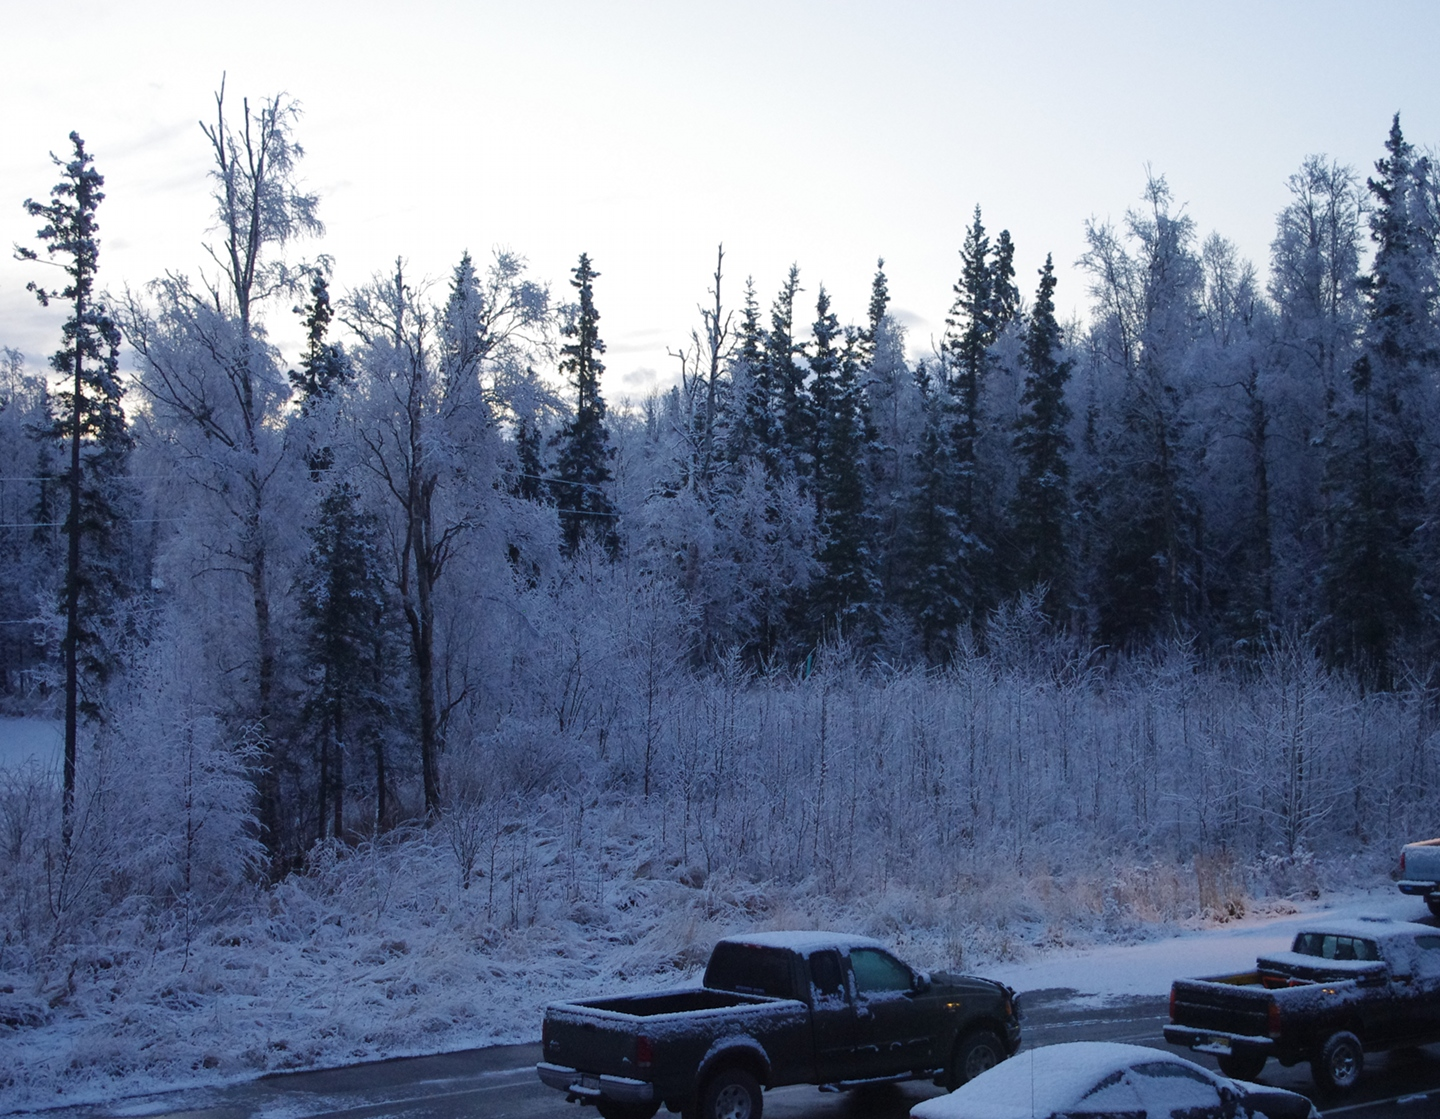 Wasilla snow, October 29, 2010 (parking lot).